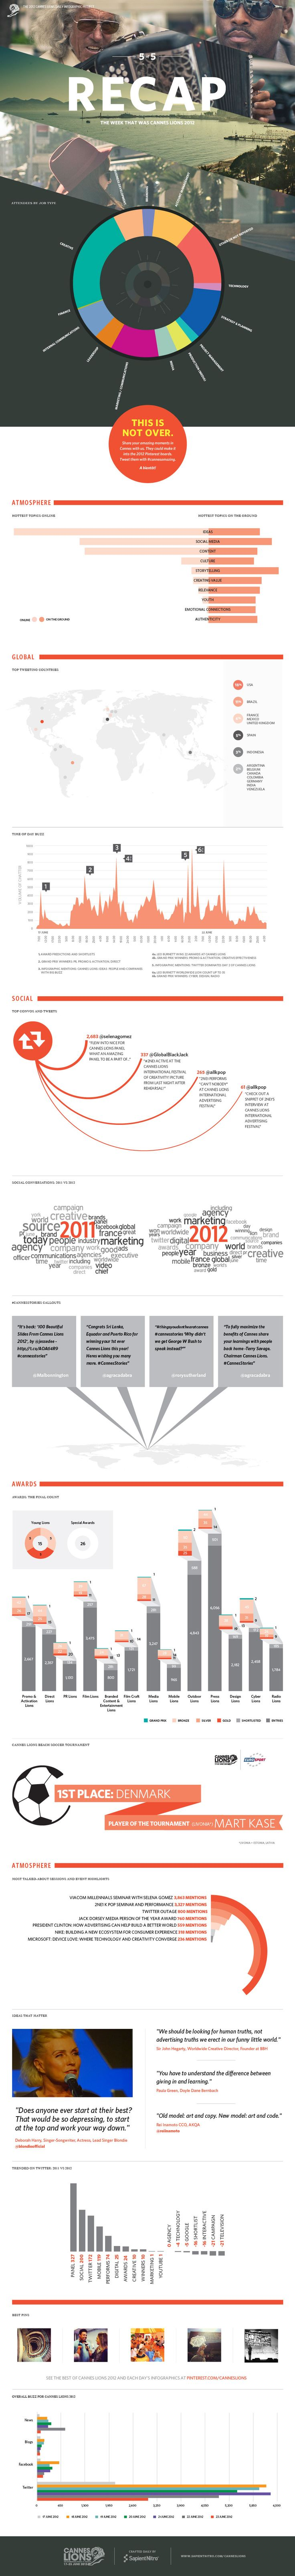 Cannes Lions 2012 trends and topics as an infographic